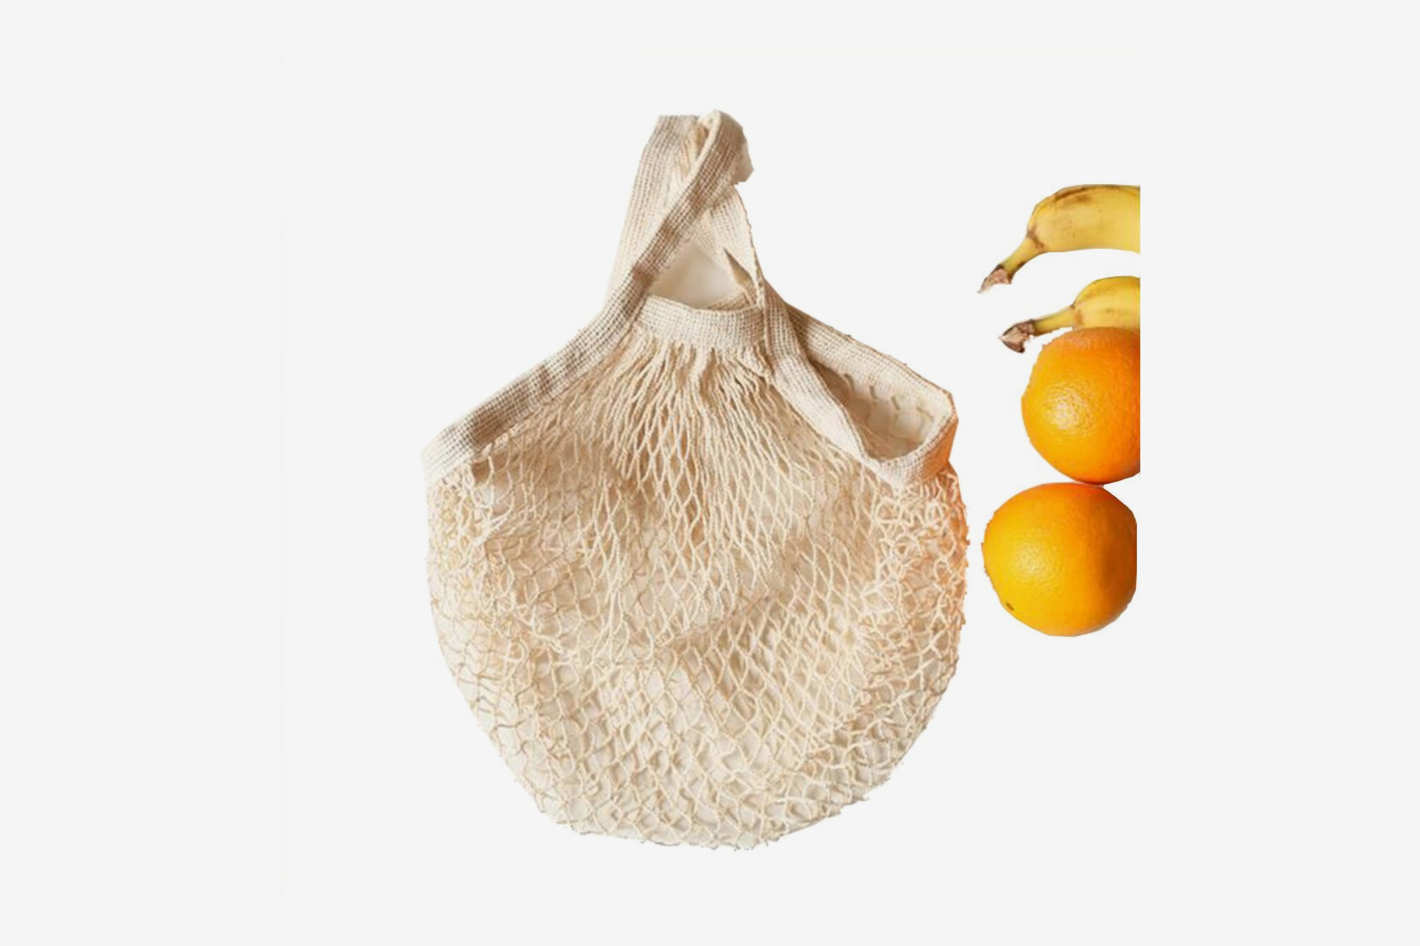 Ahyuan Ecology Reusable Cotton Mesh Grocery Bags